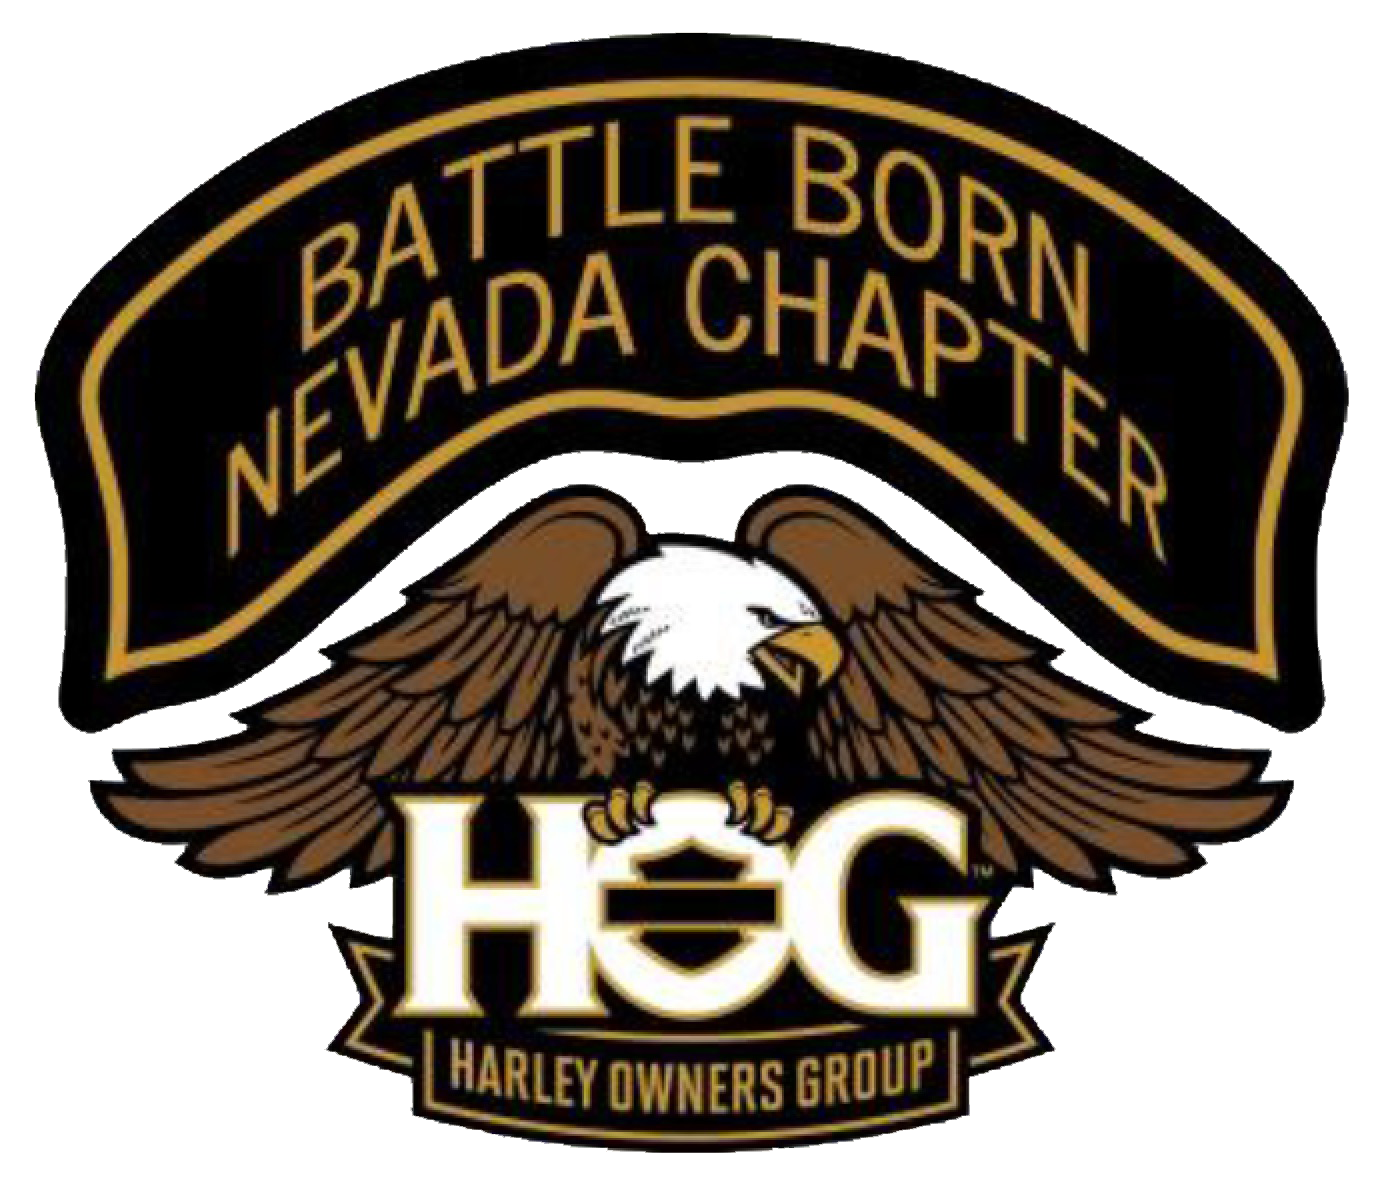 Battle Born Harley Owners Group